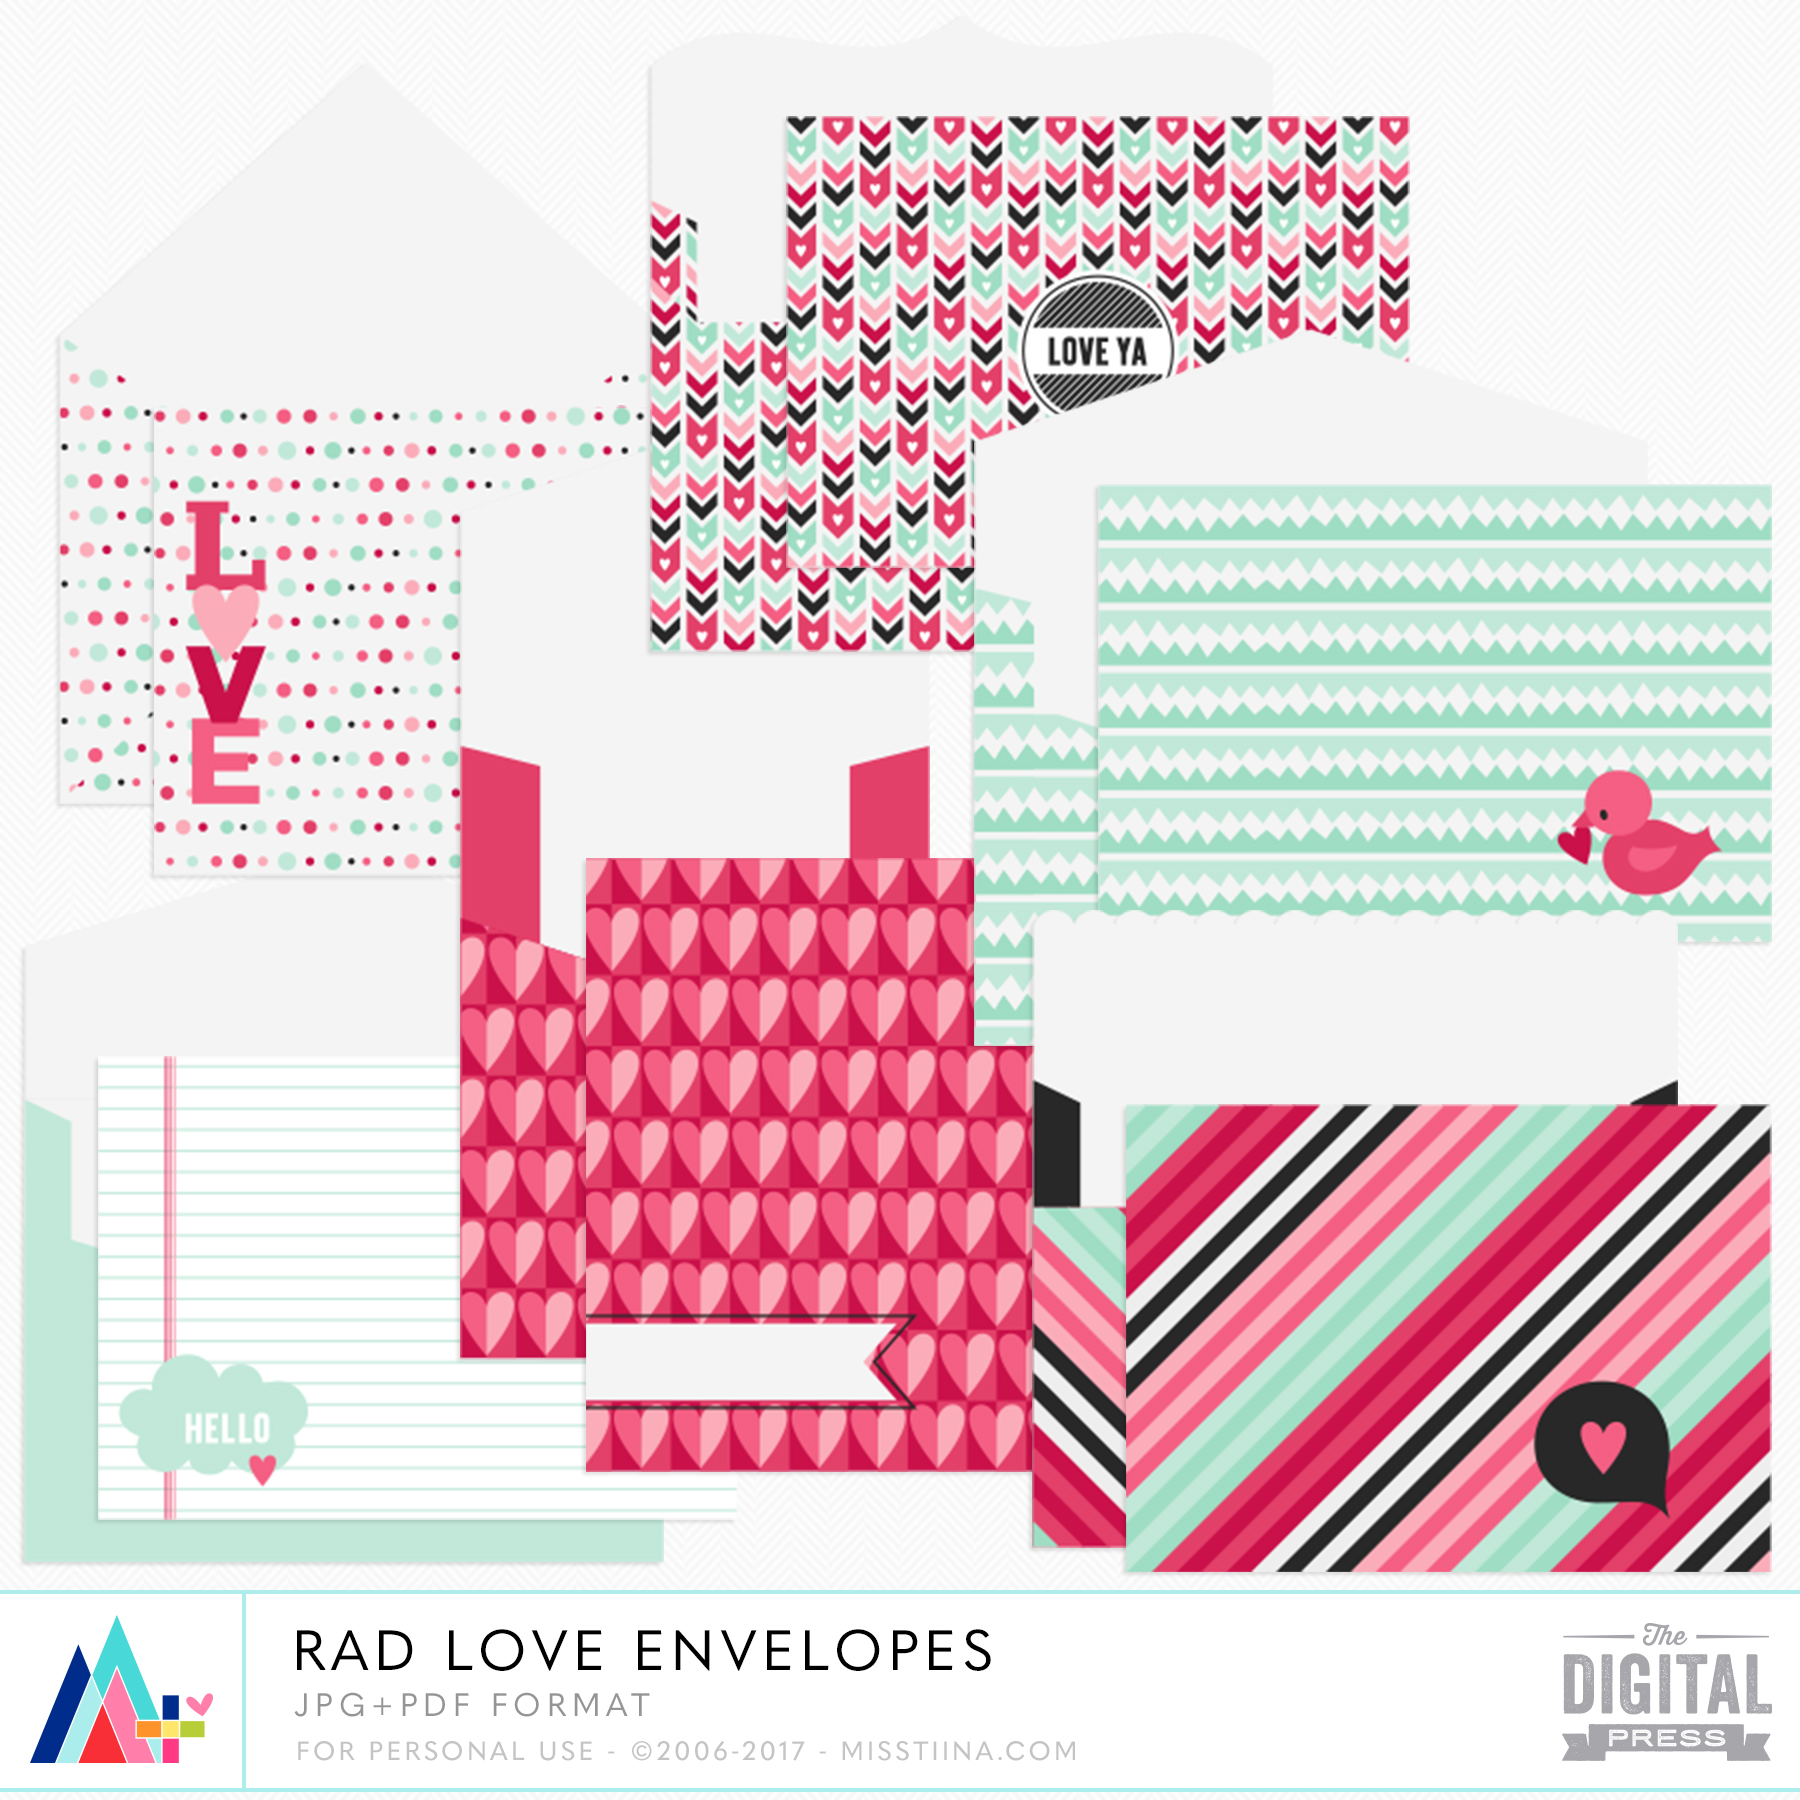 Rad Love Envelopes